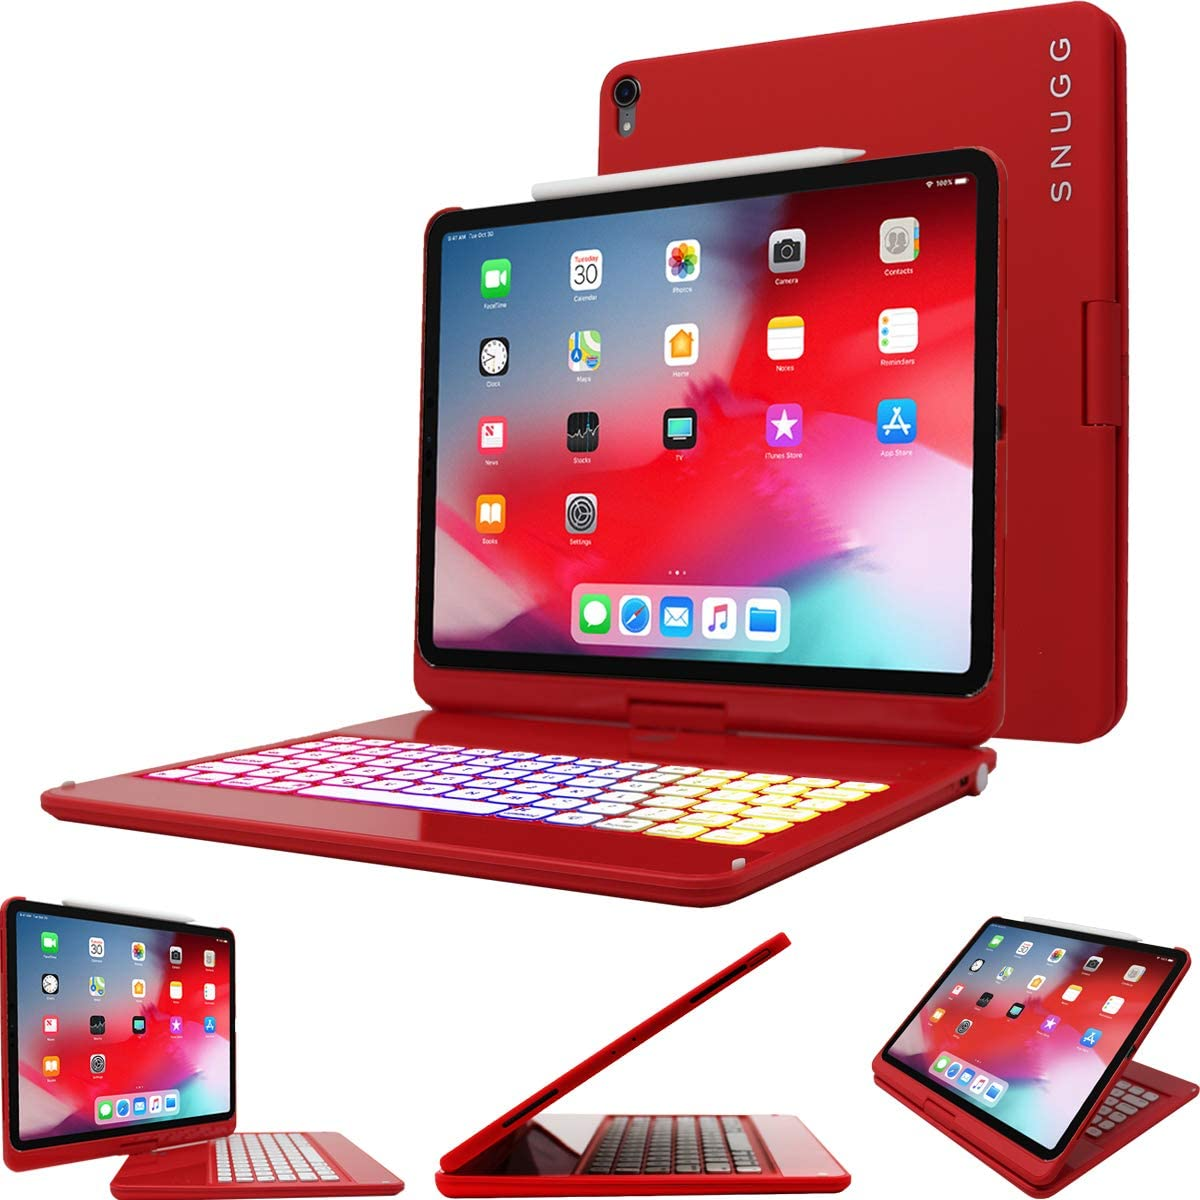 Snugg iPad Pro 12.9 2018 (3rd Gen) Keyboard, Backlit Wireless Bluetooth Keyboard Case Cover 360° Degree Rotatable Keyboard for Apple iPad Pro 12.9 2018 (Apple Pencil Compatible)- Red